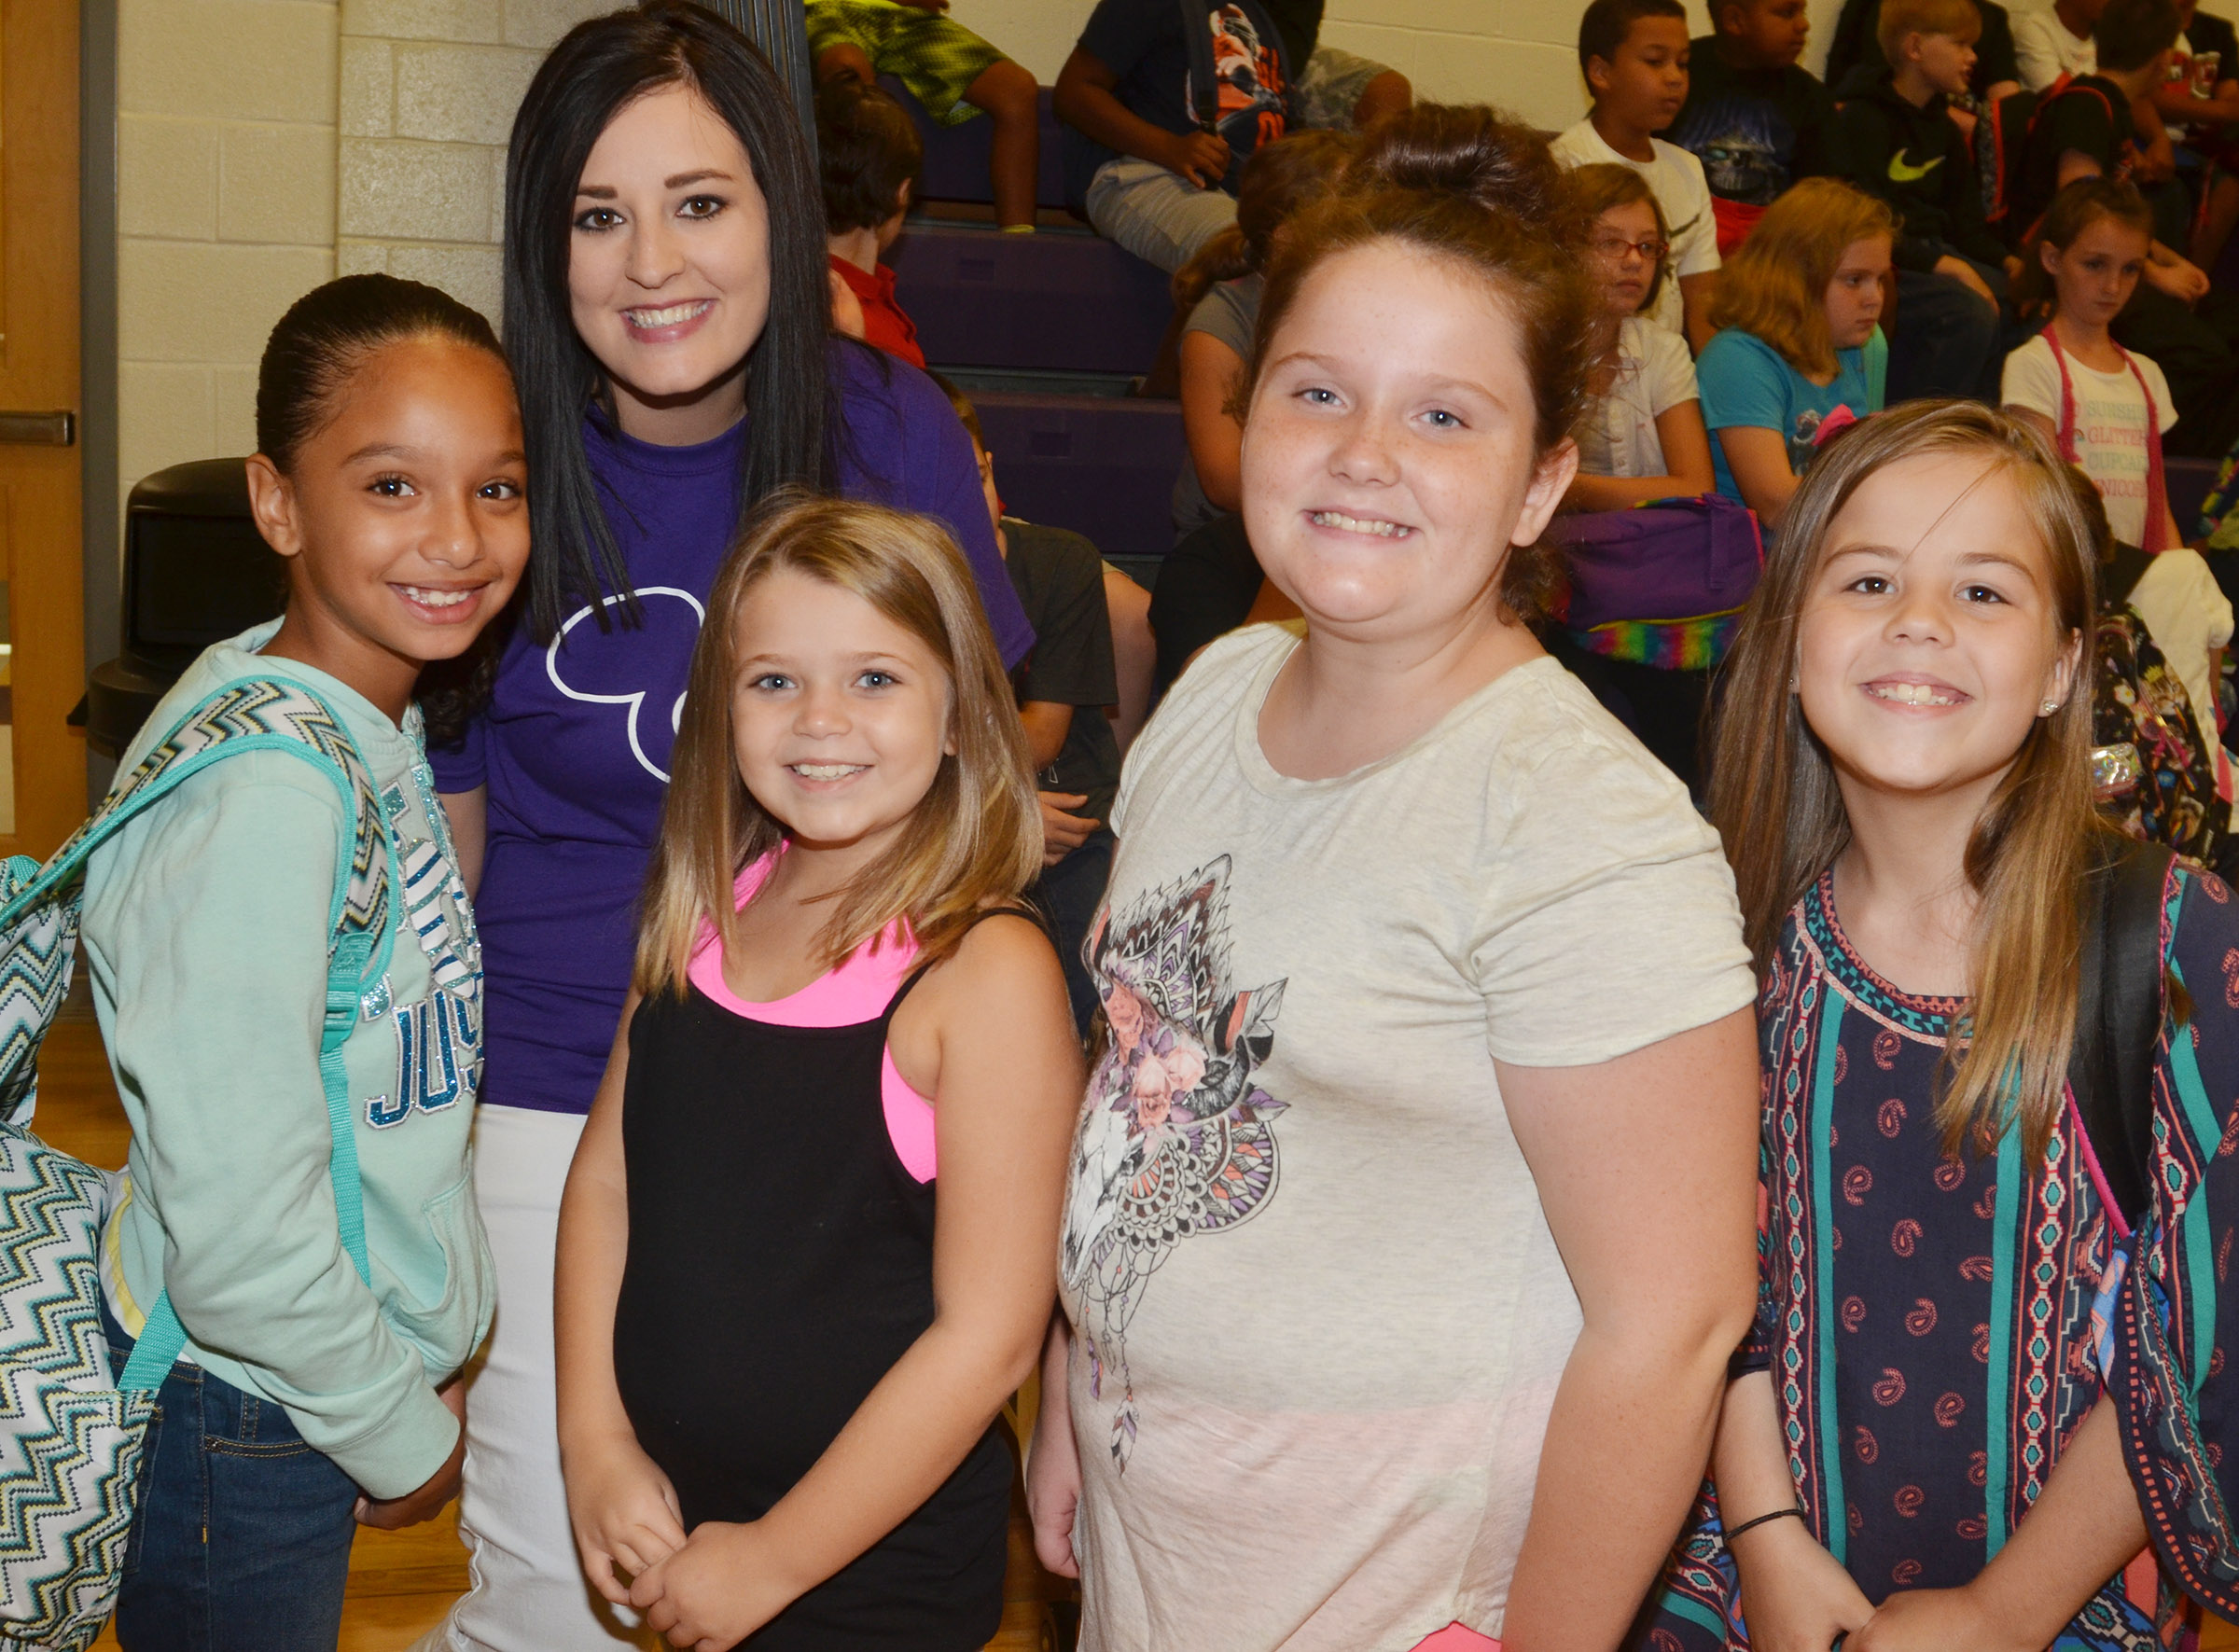 CES teacher Samantha Coomer poses for a photo with her fourth-grade students, from left, Alyssa Knezevic, Chyanne Christie, Madison Philpott and Chloe Bates.